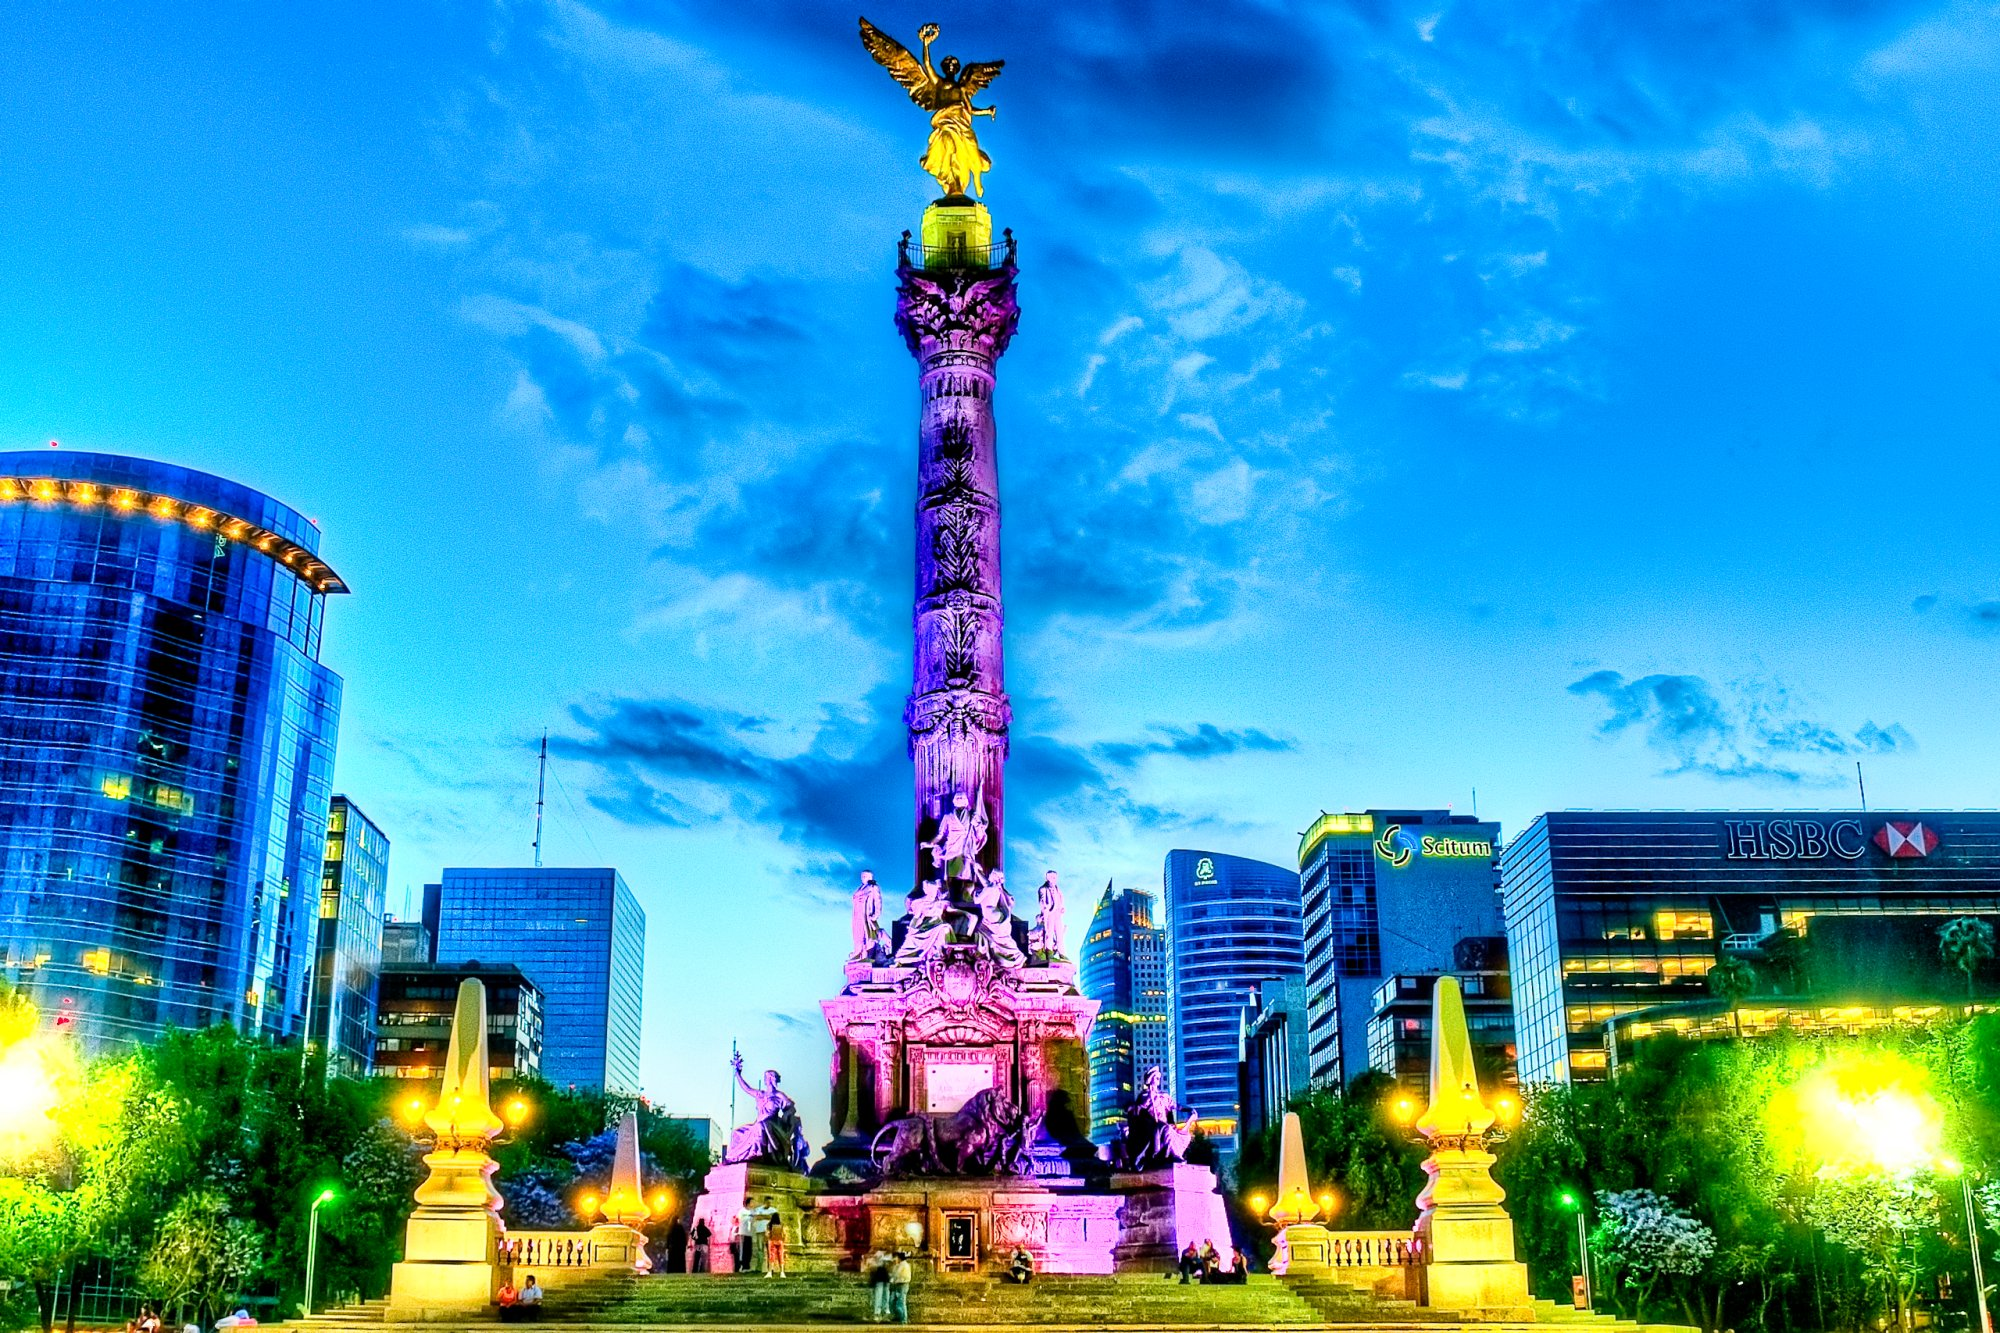 Mexico City Wallpapers 5657GHM WallpapersExpertcom 2000x1333